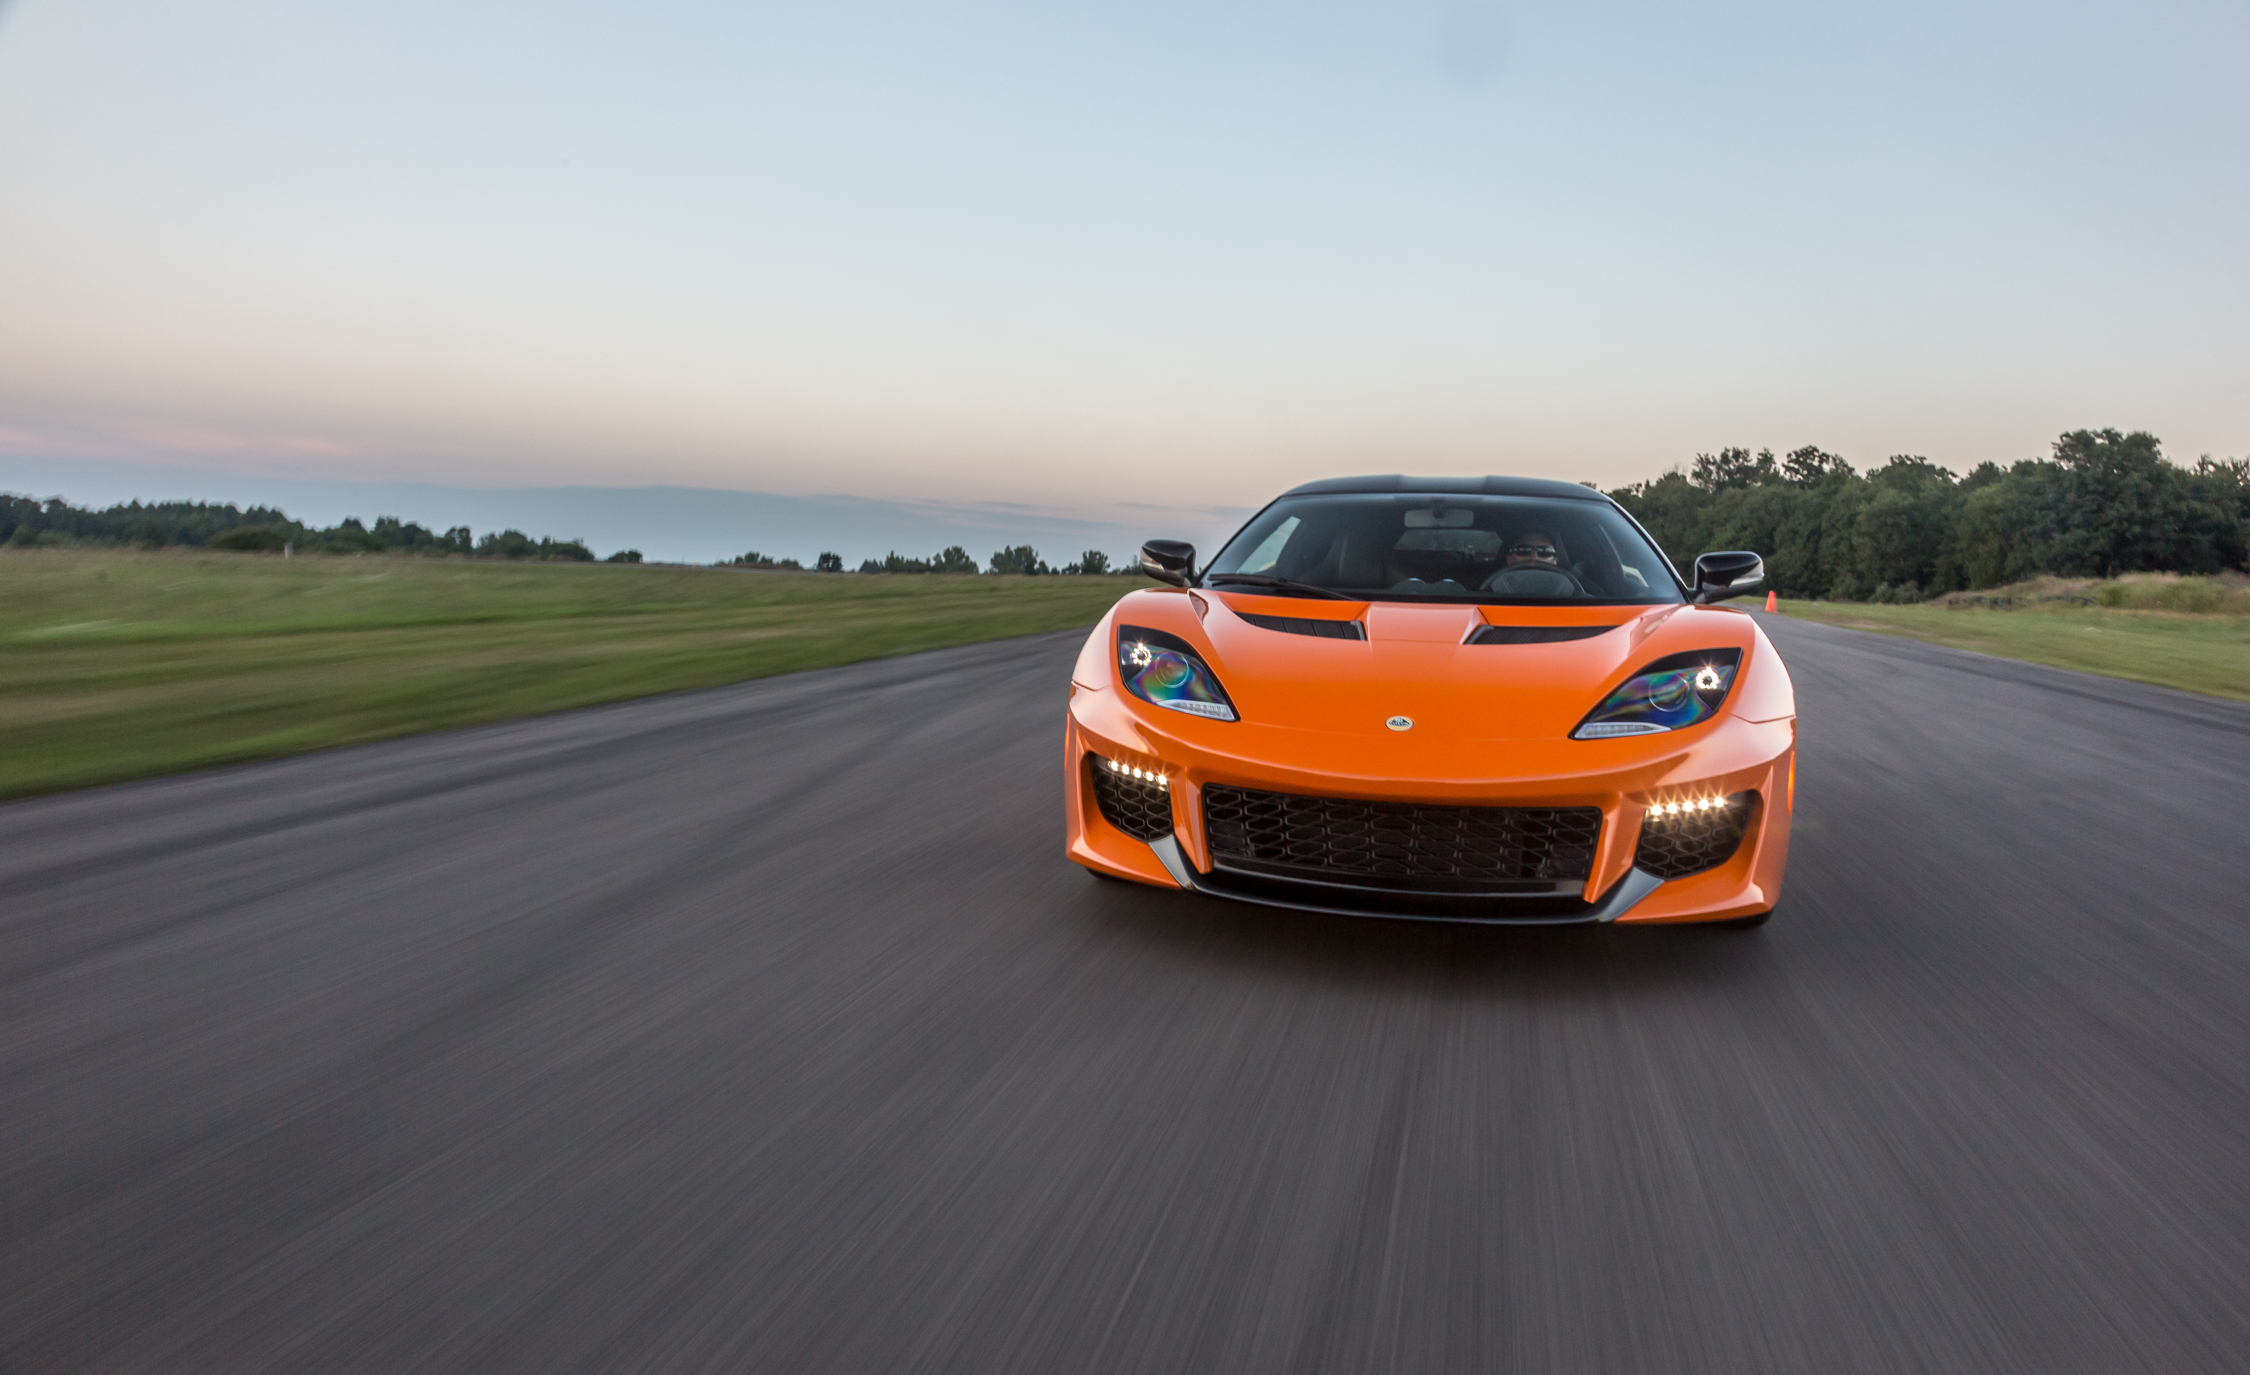 2017 Lotus Evora 400 Circuit Test (View 6 of 12)